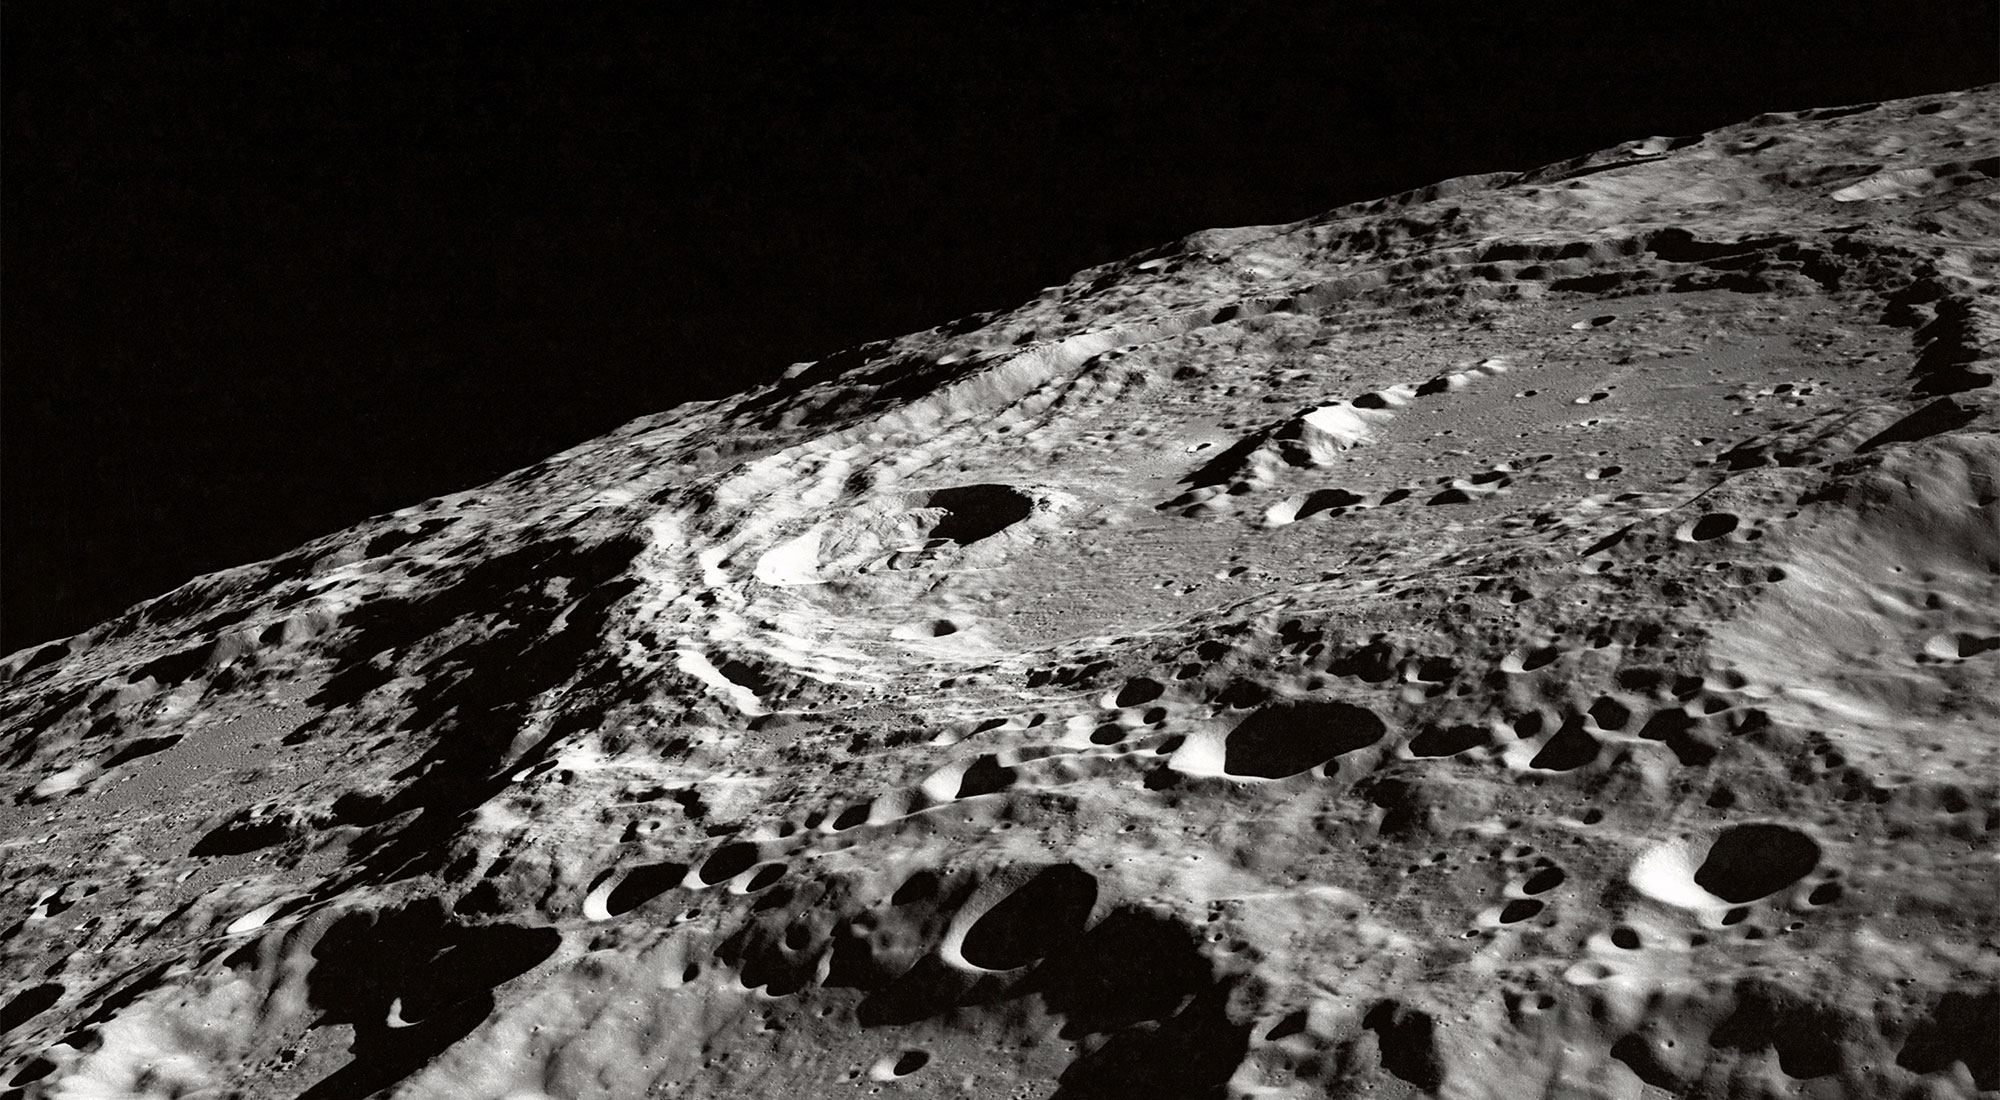 Photo of the moon's craters